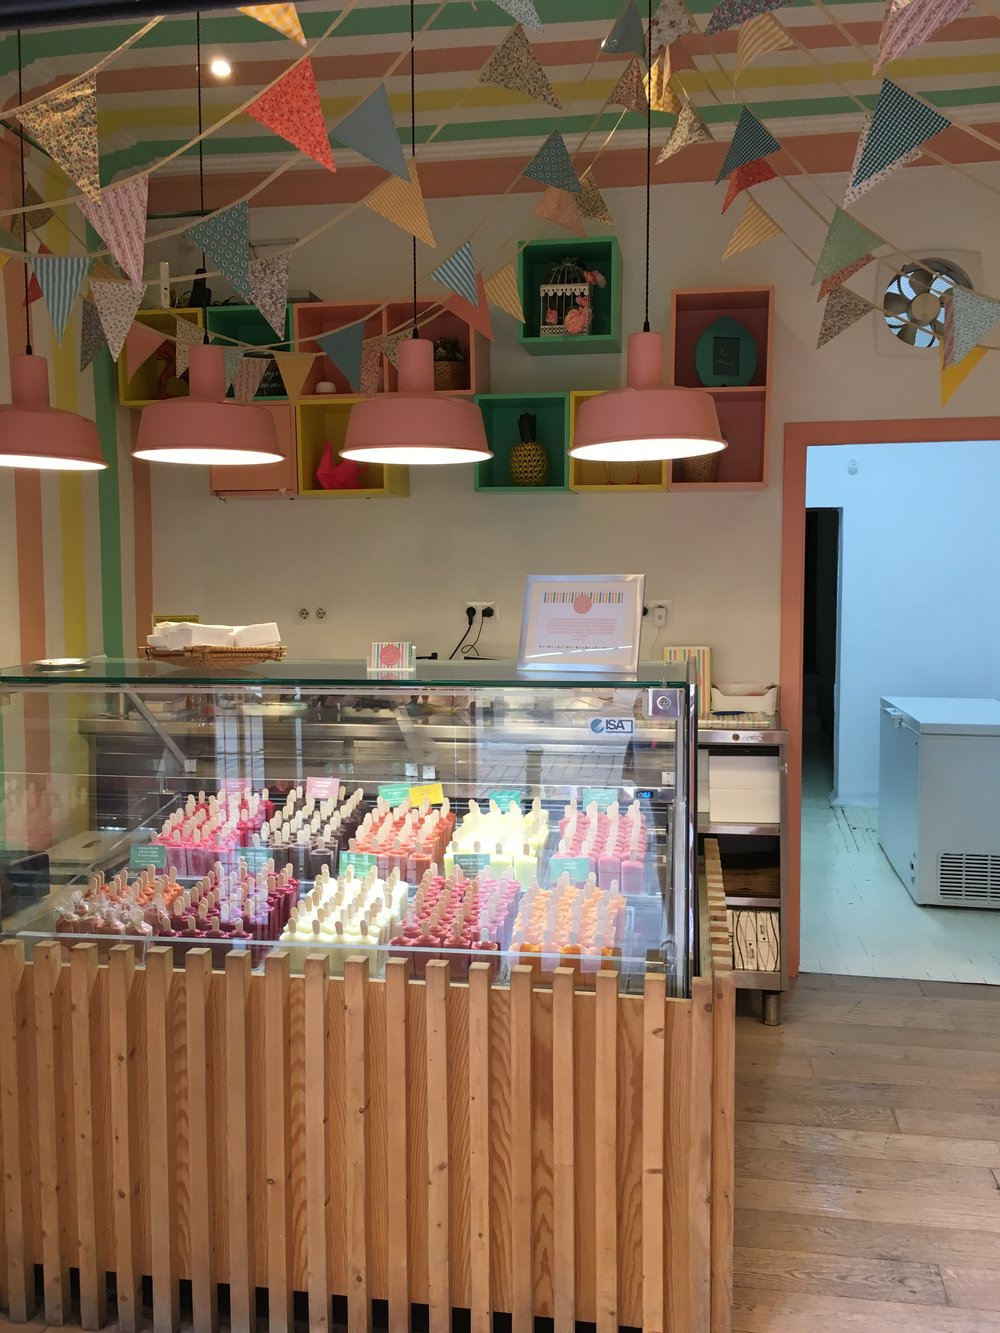 Lolo Polos Artesanos - Calle Espiritu Santo, 16 - an amazing ice lolly shop